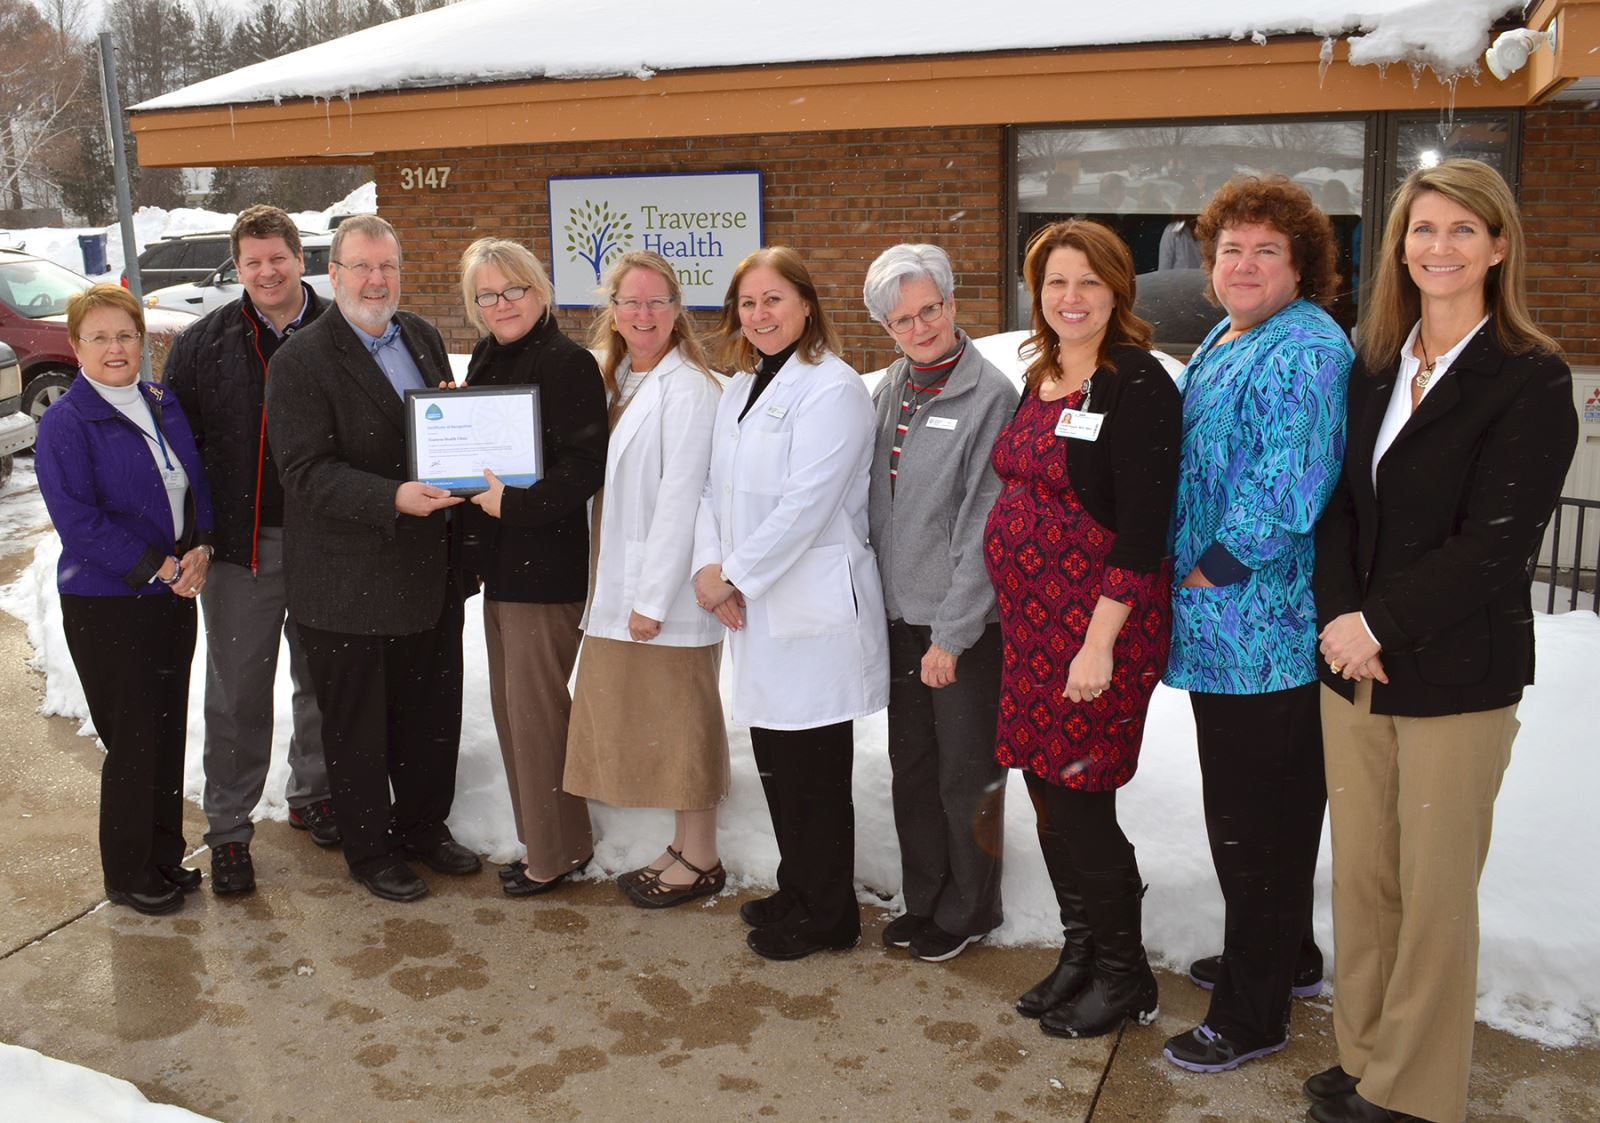 Traverse Health Clinic receives award